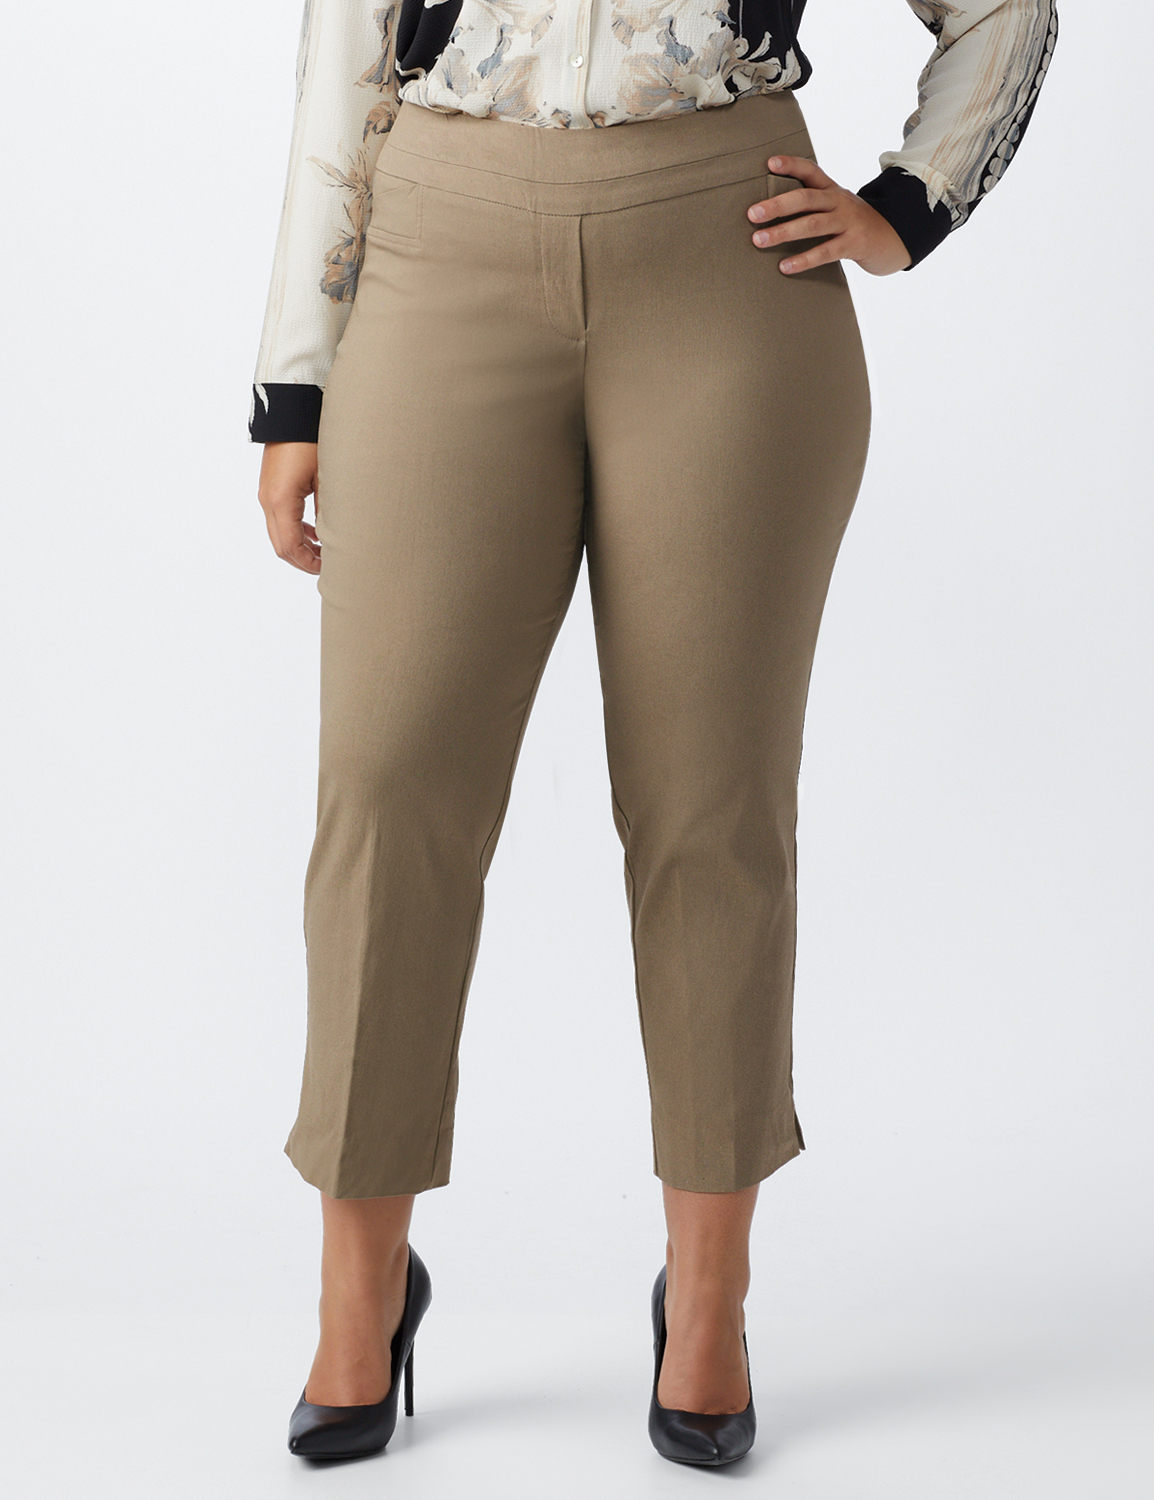 Plus - L-Pocket Pull-On Crop Pants -Taupe - Front